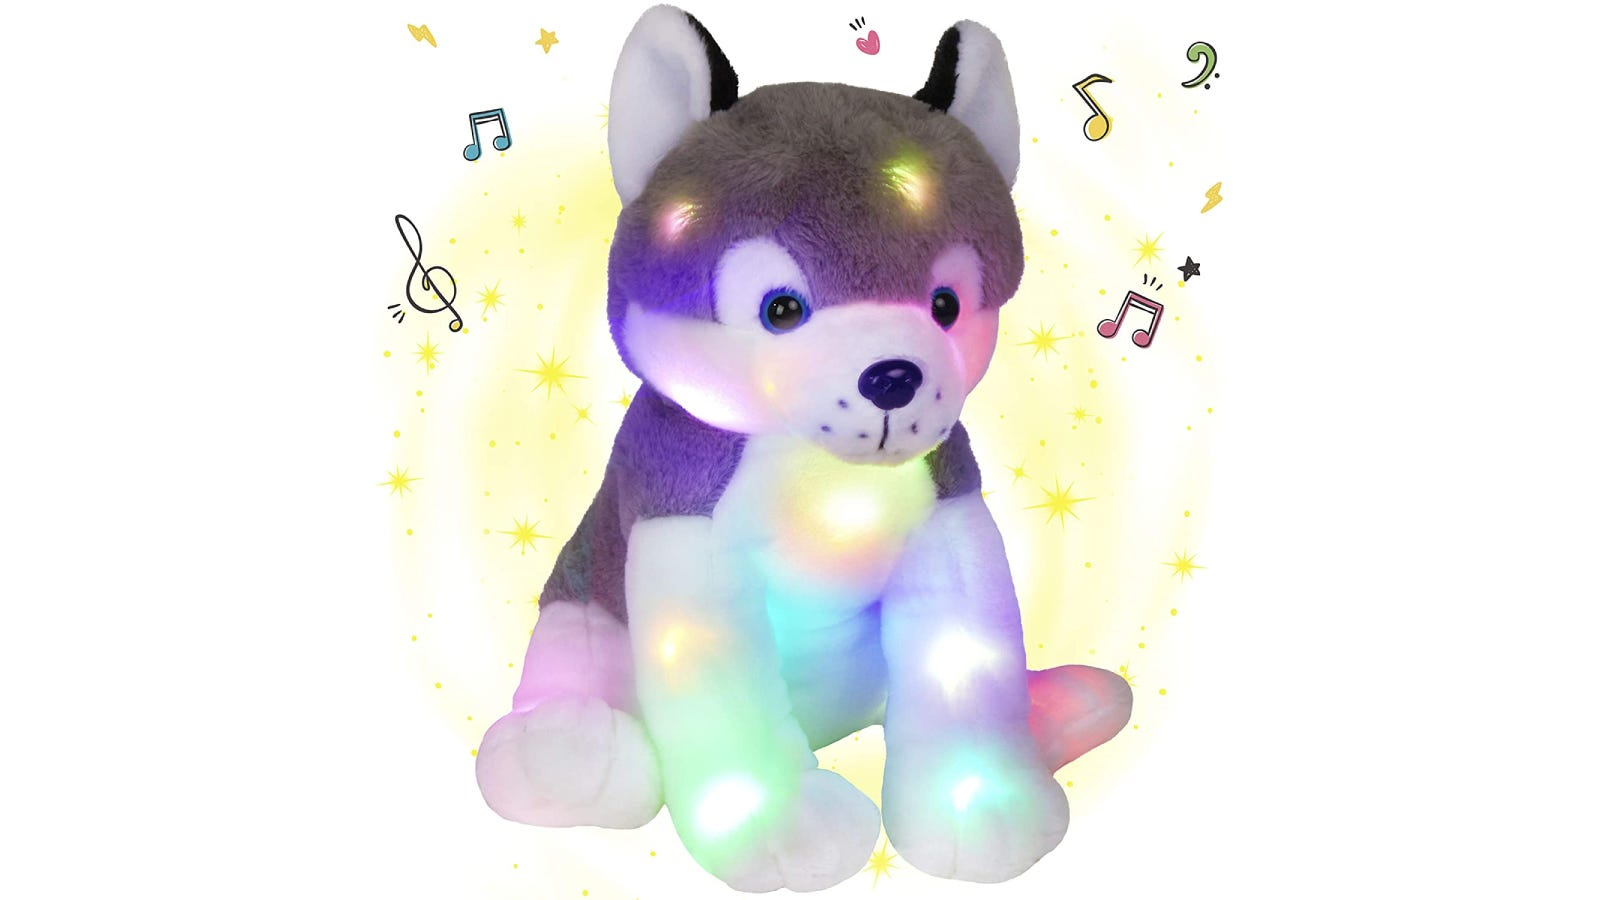 A husky stuffed animal glowing different colors and surrounded by musical notes.